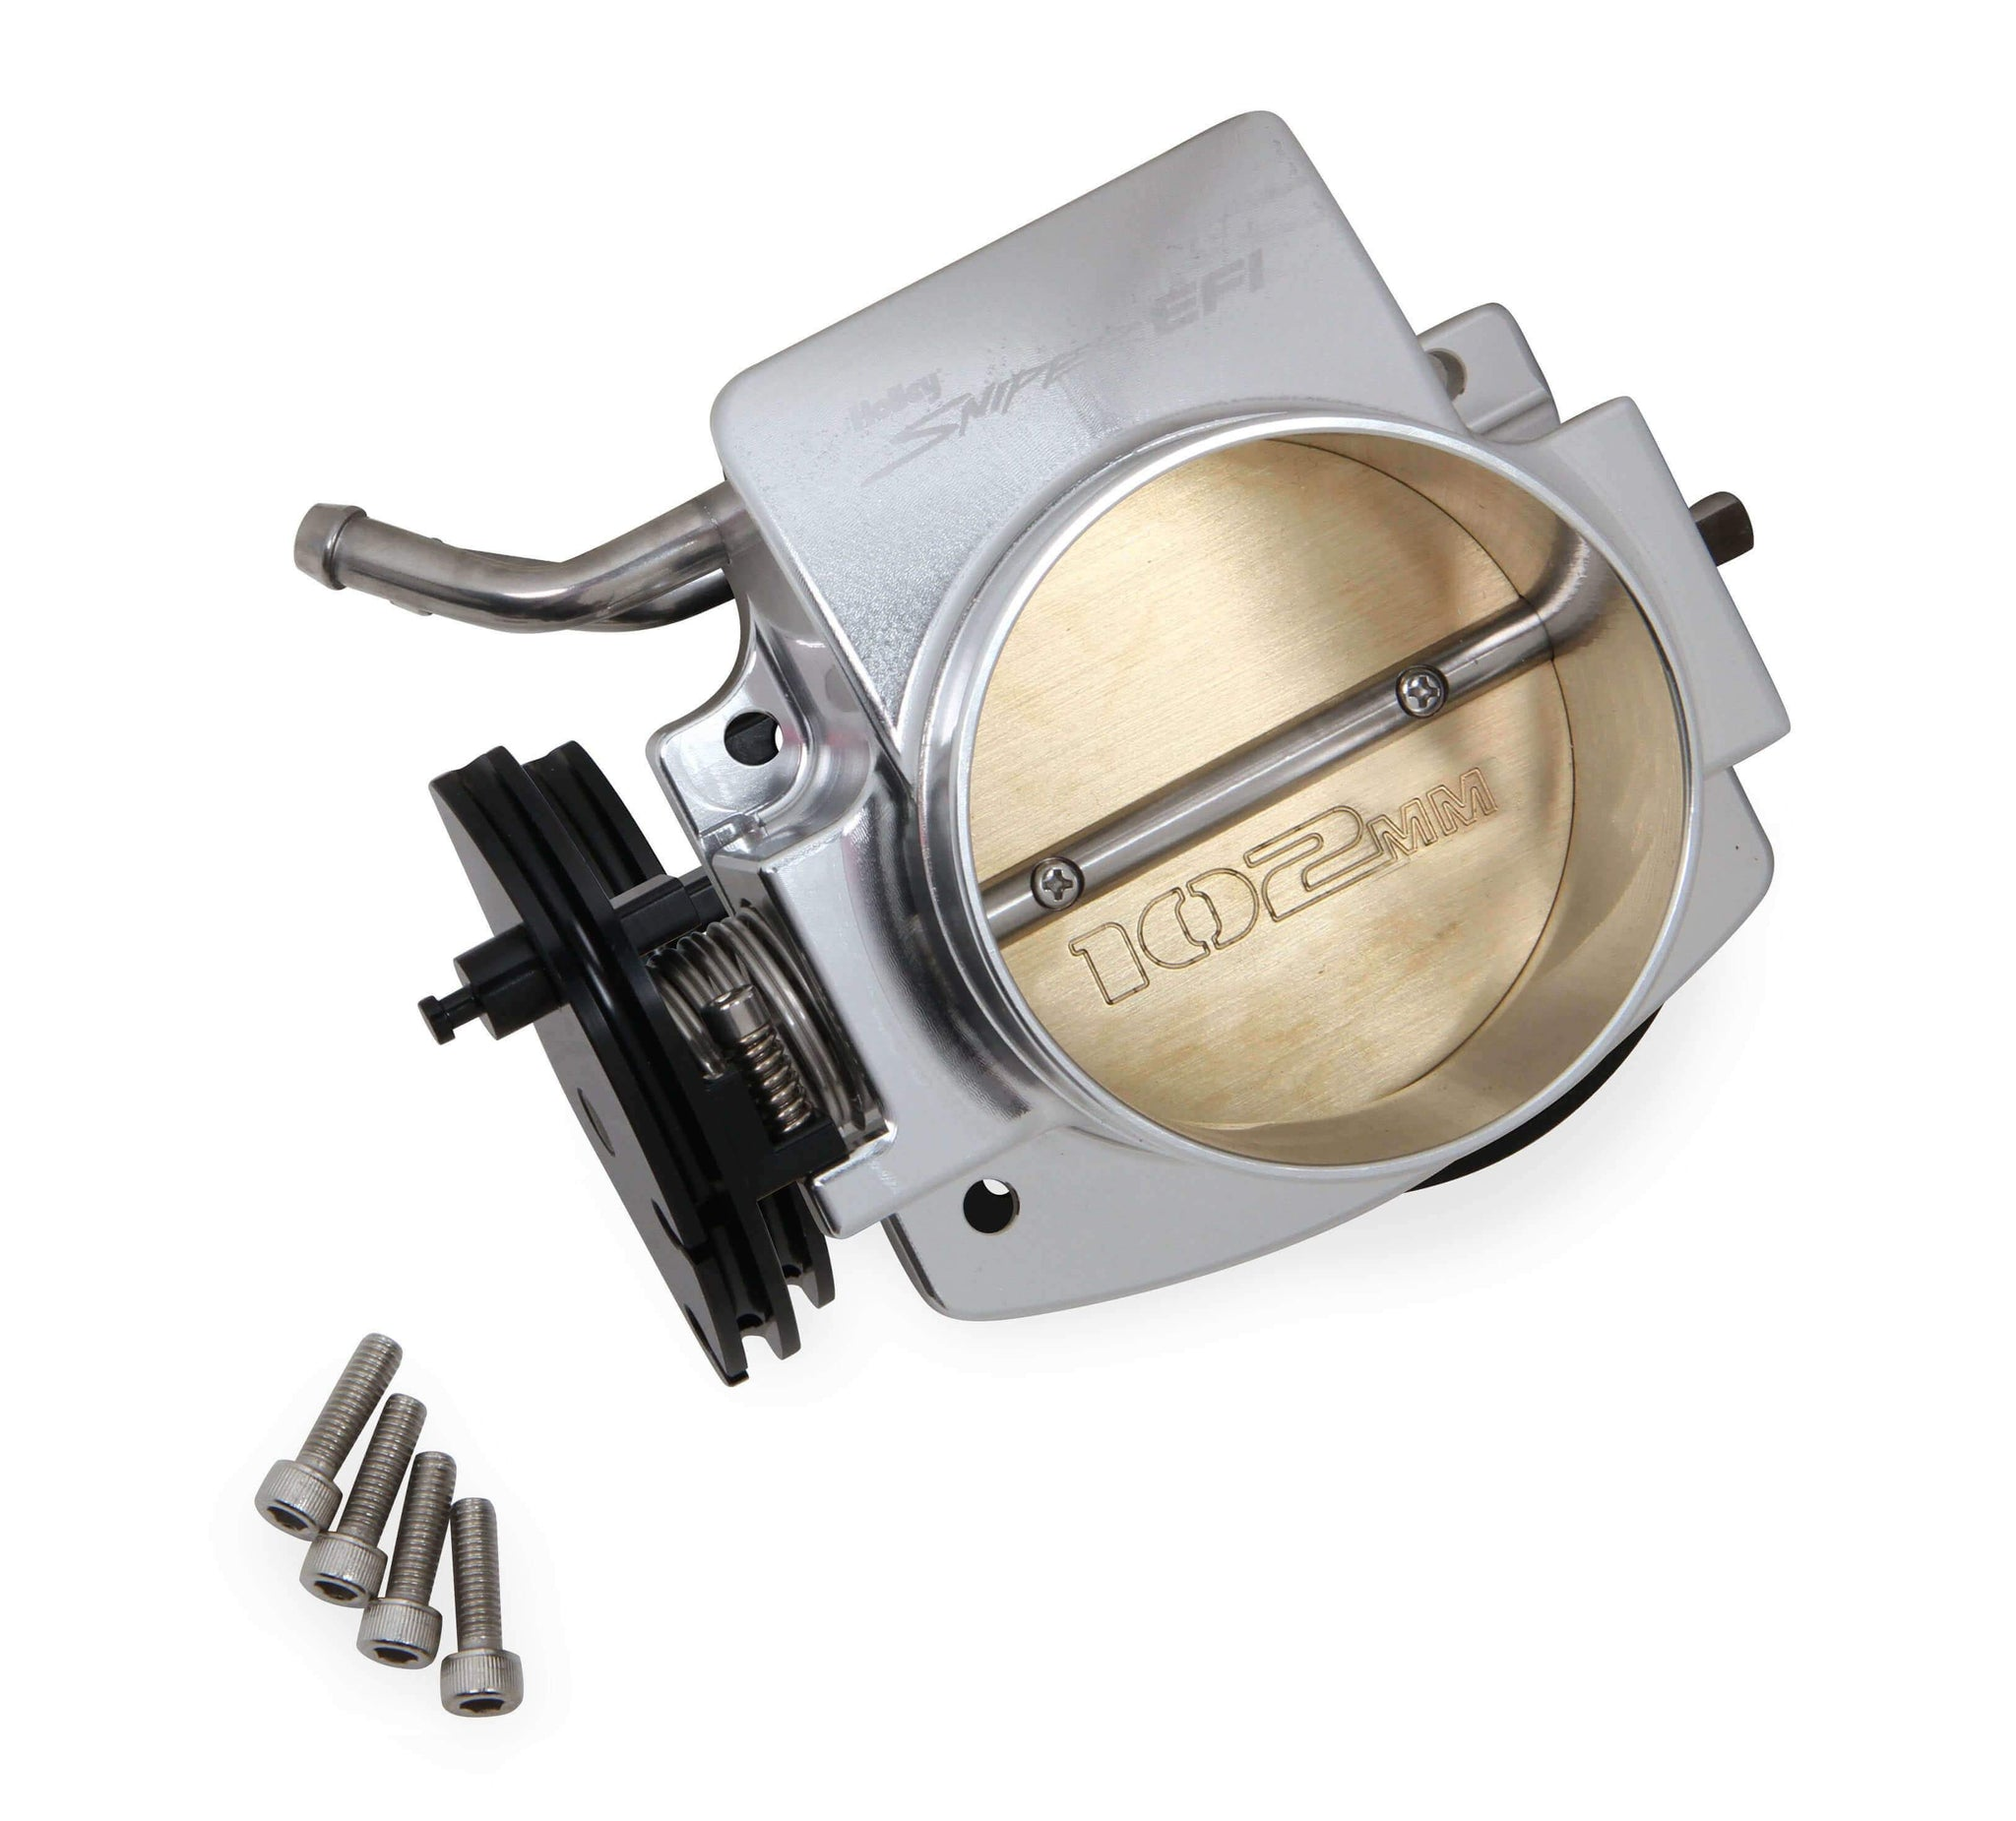 HOLLEY SNIPER 102mm THROTTLE BODY - 860002-1